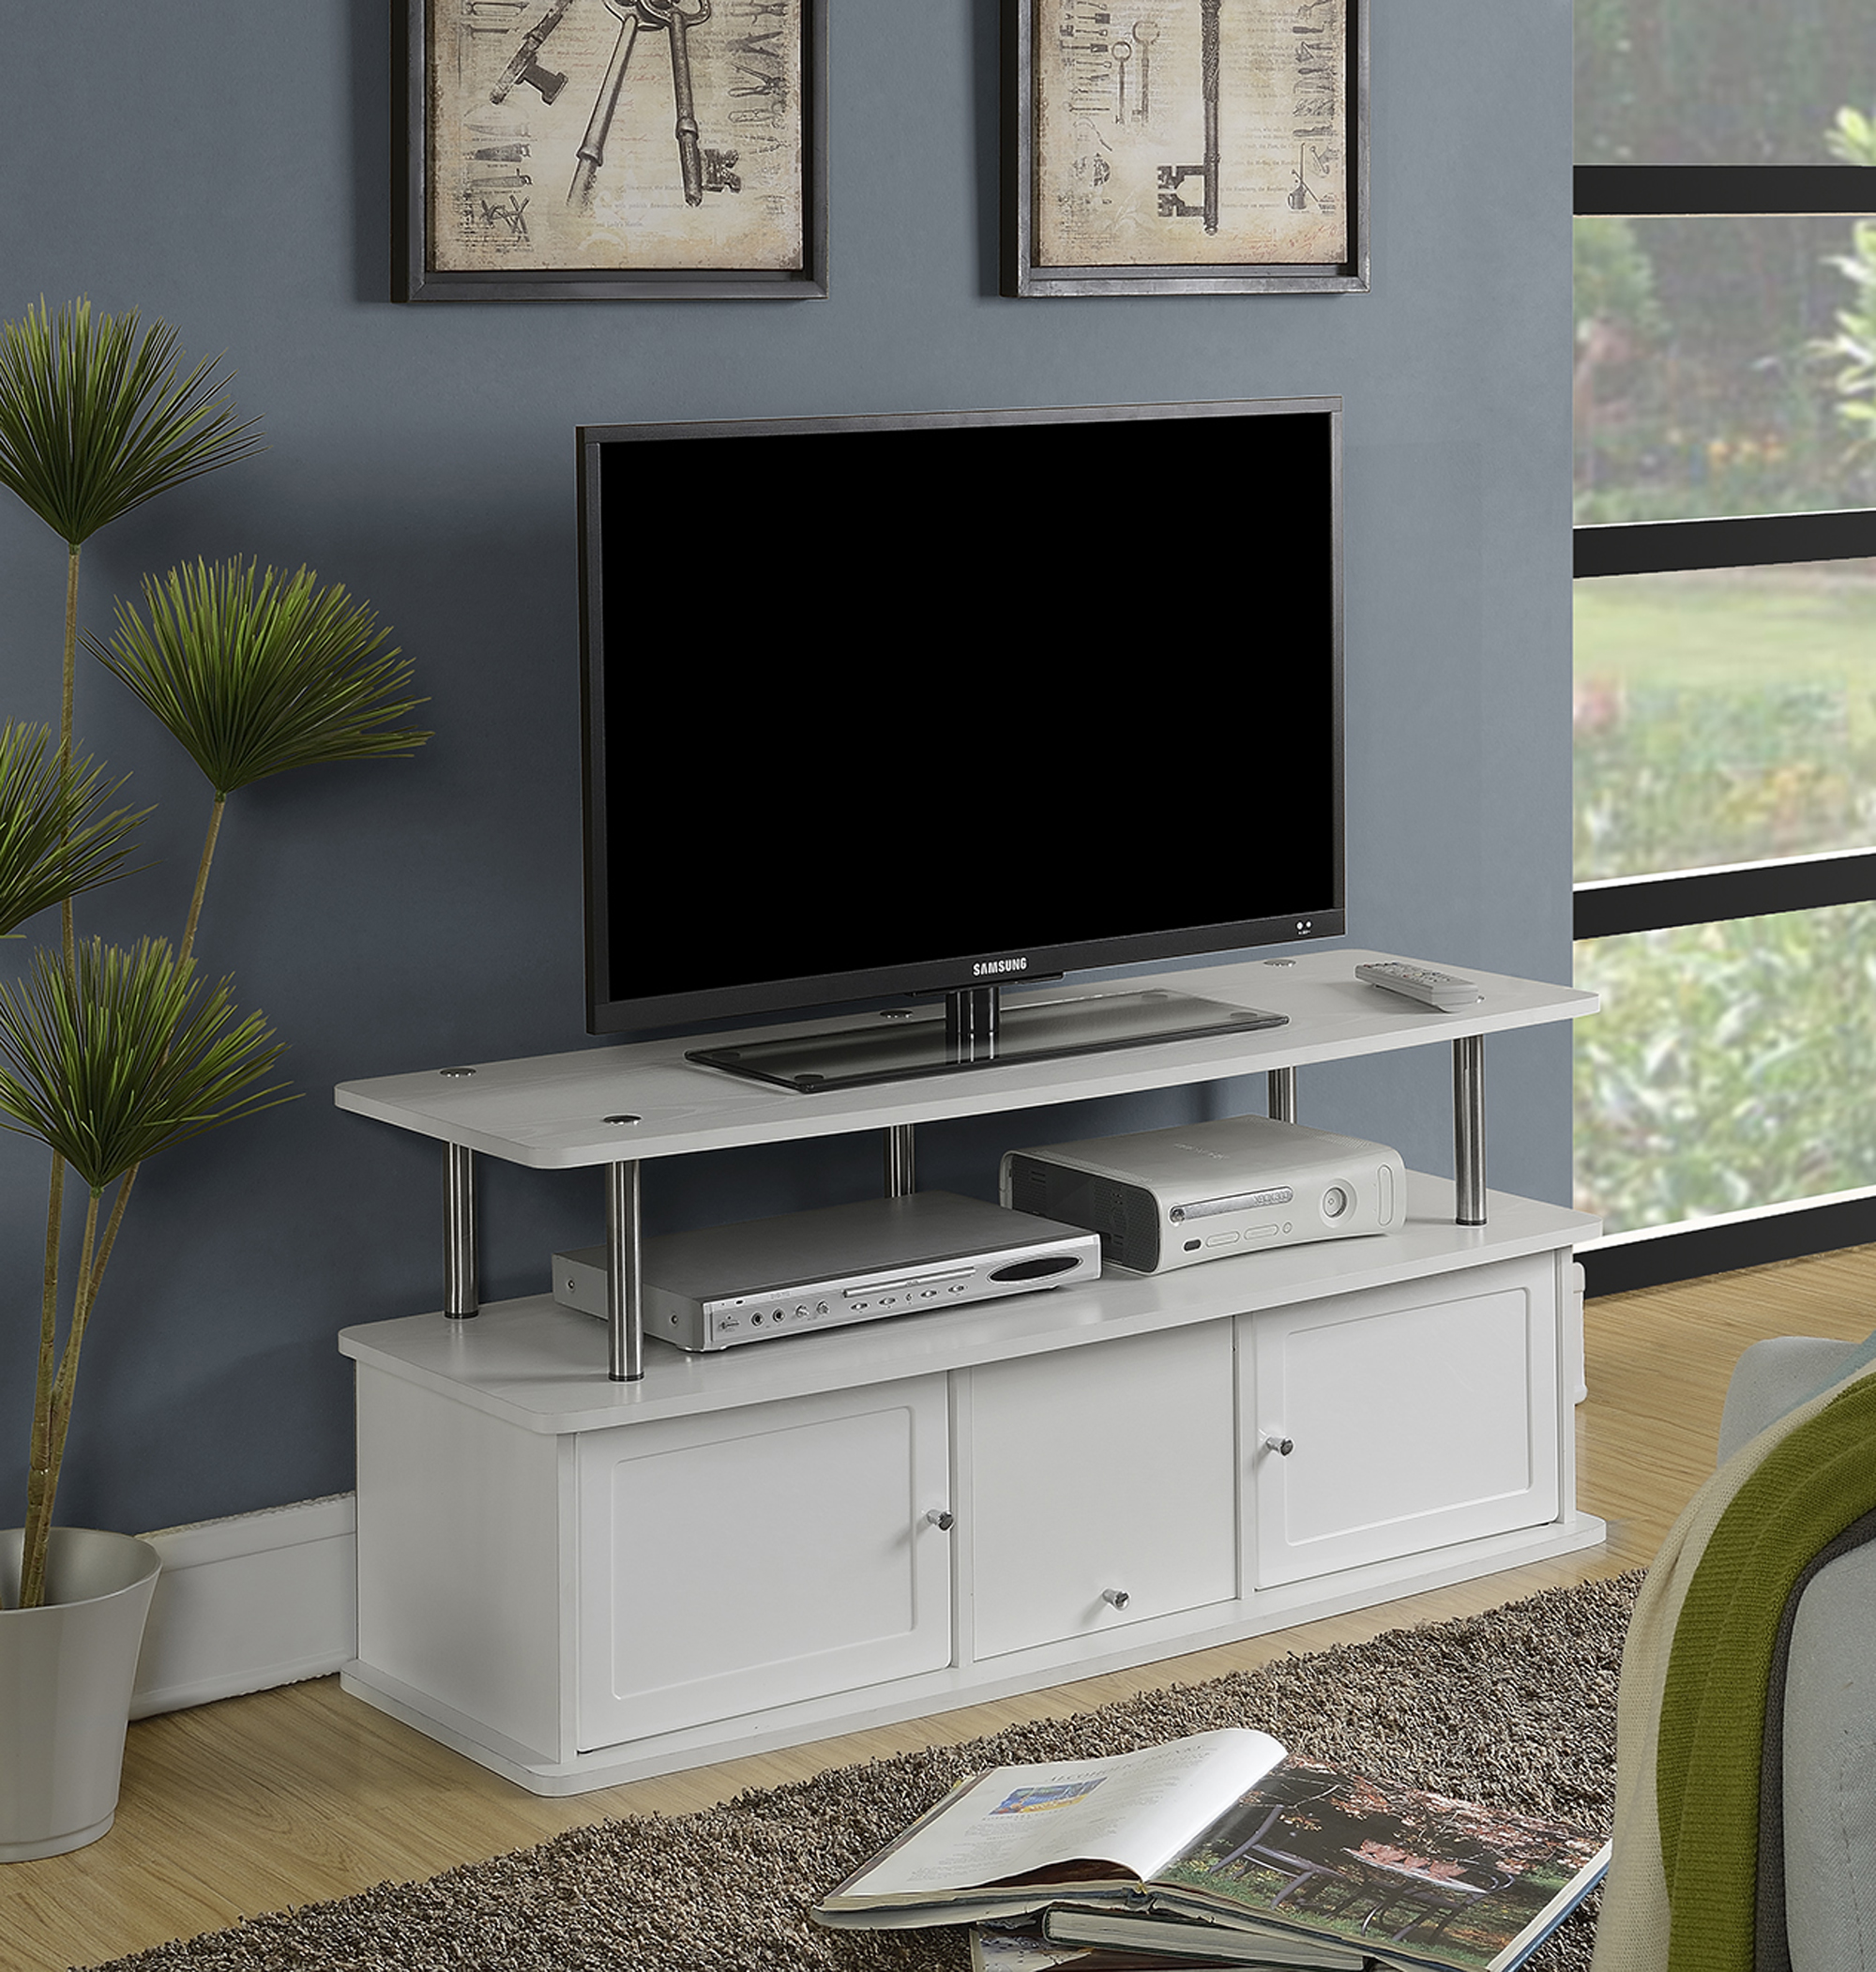 Convenience Concepts Designs2Go Cherry TV Stand with 3 Cabinets for TVs up to 50\ by Convenience Concepts Inc